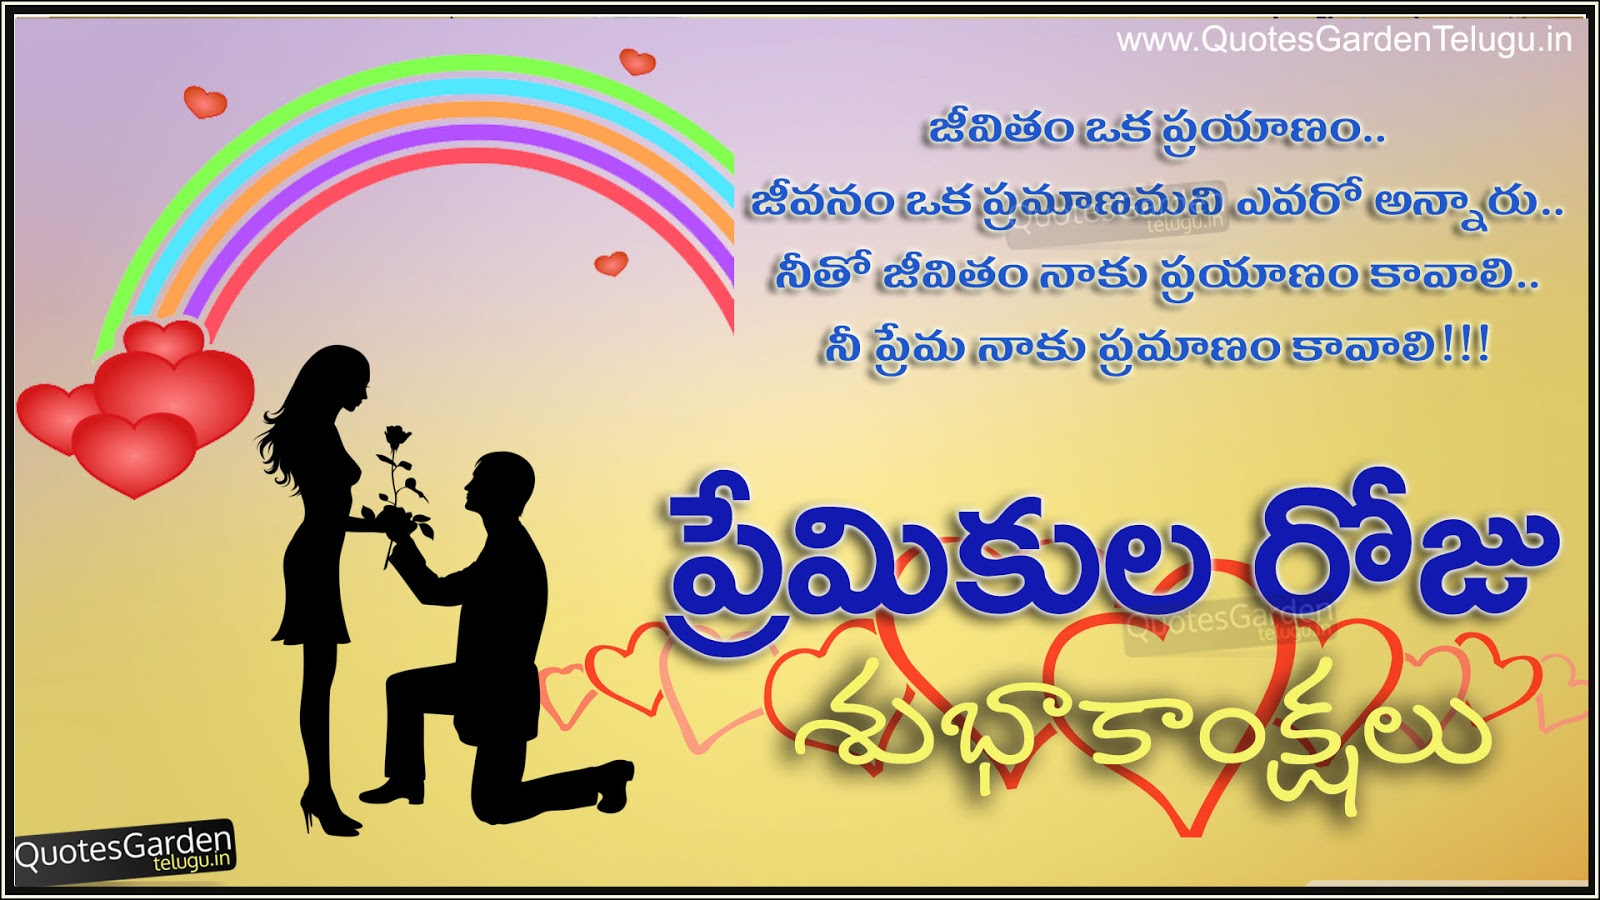 Telugu Valentines Day Greetings Prema Kavitalu Love Sms Quotes Garden Telugu Telugu Quotes English Quotes Hindi Quotes There have been many pocket books of inspiring quotes by luminaries from various fields in english. telugu valentines day greetings prema